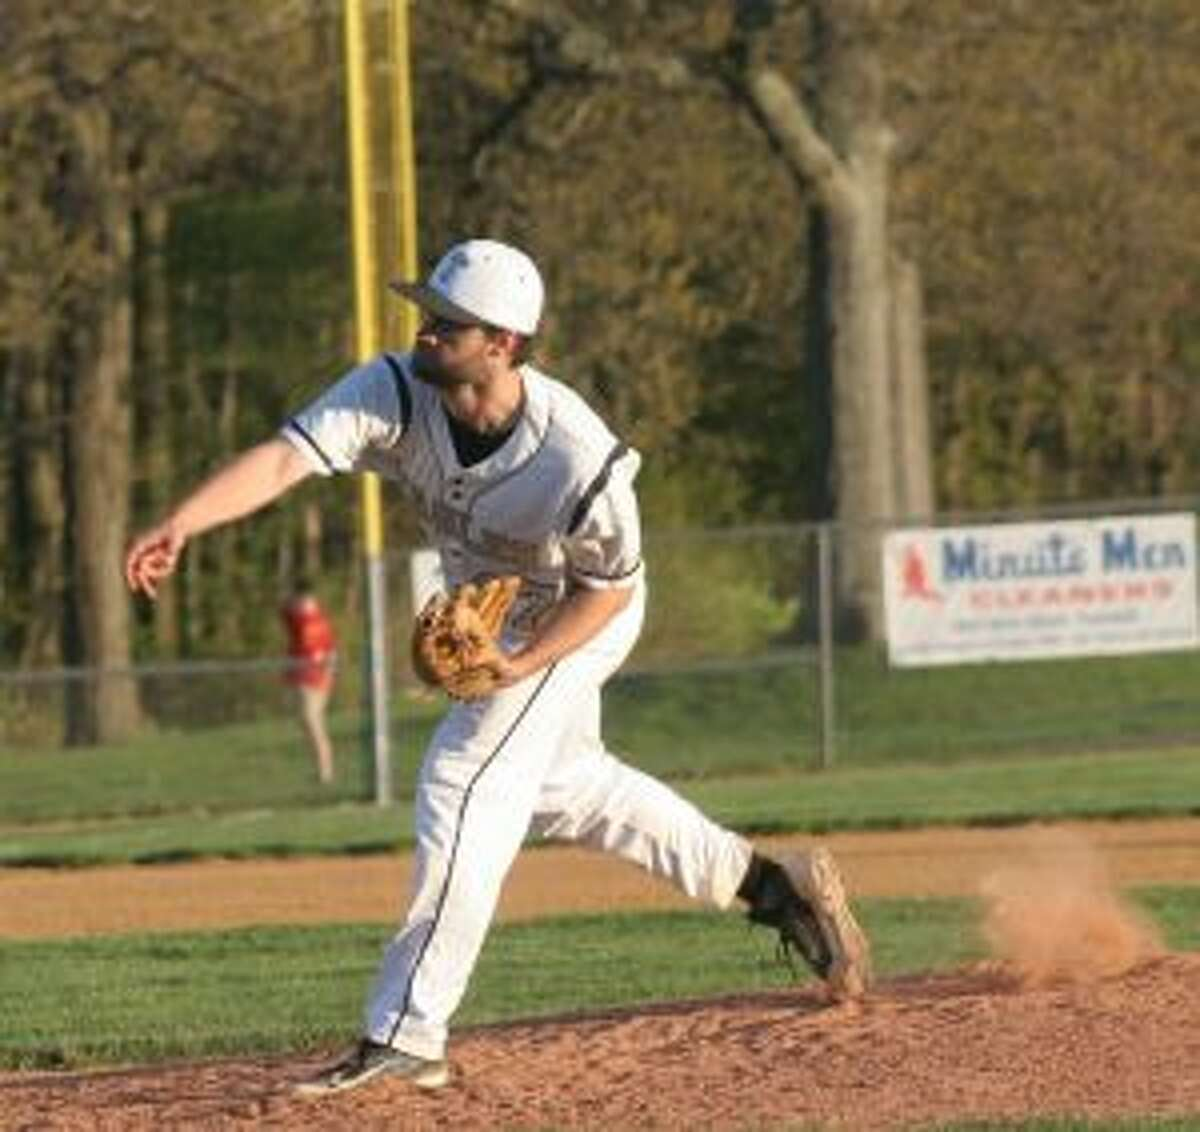 Andrew Lojko tossed a two-hit shutout when Trumbull High defeated Wilton High 1-0. - Bill Bloxsom photo